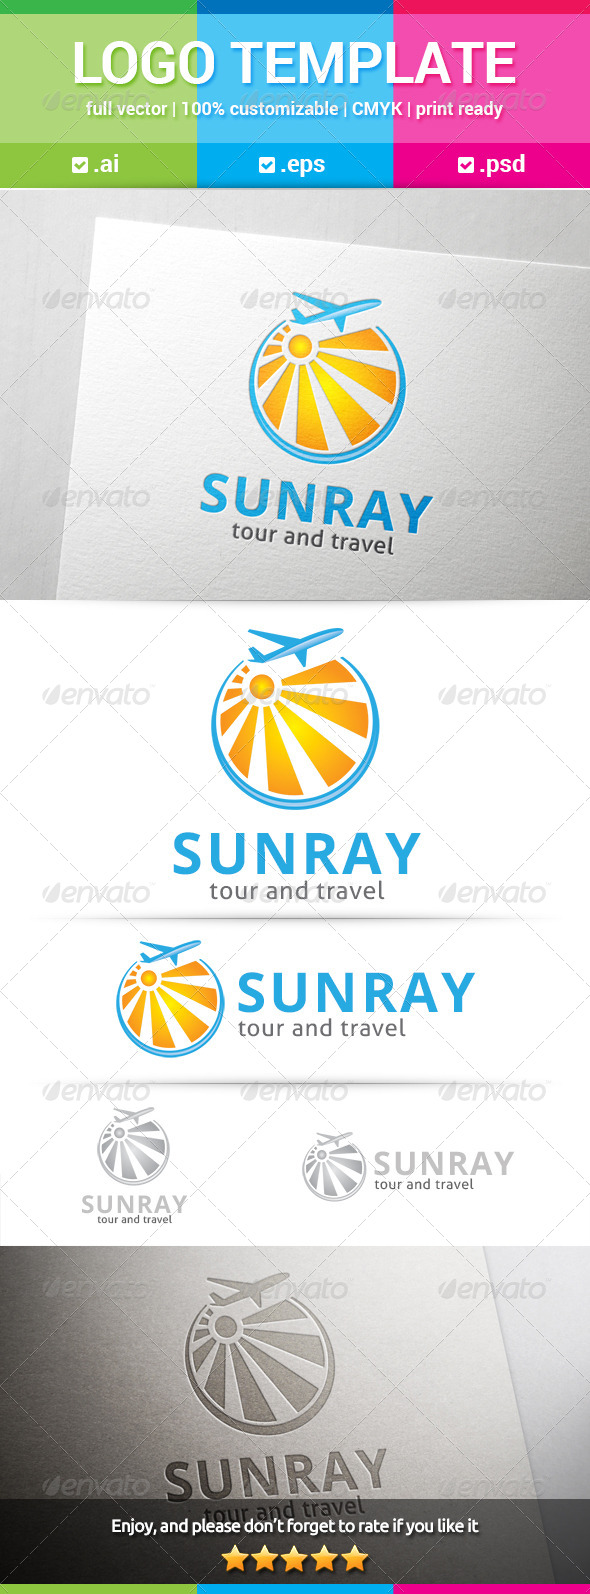 GraphicRiver Sunray Travel Logo 8284342